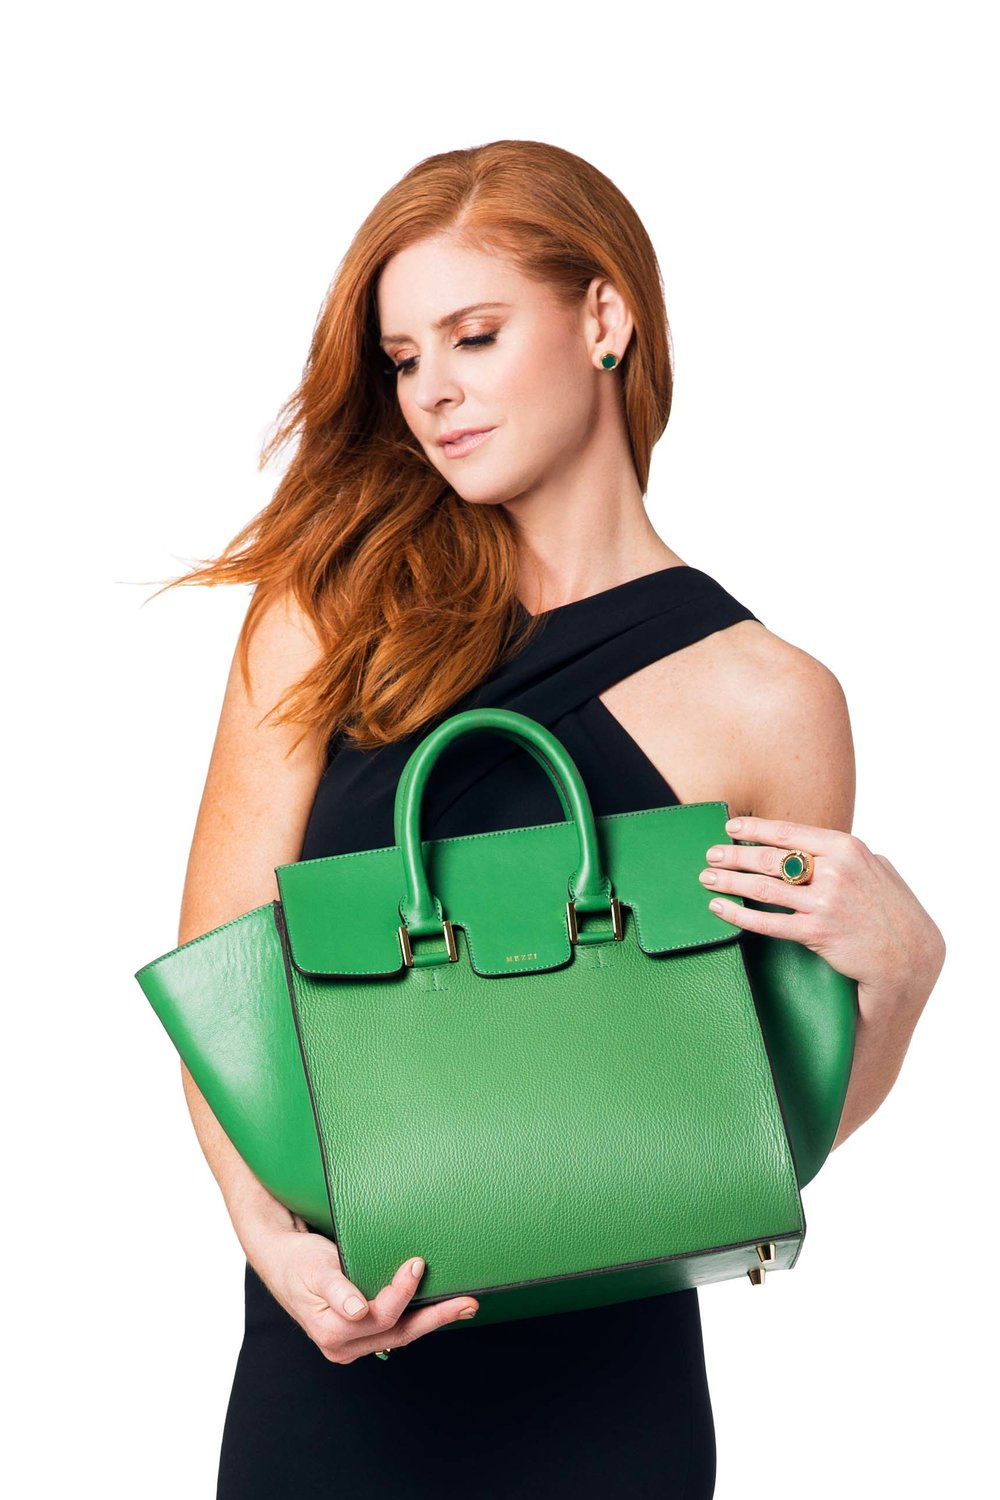 Sarah Rafferty for Mezzi